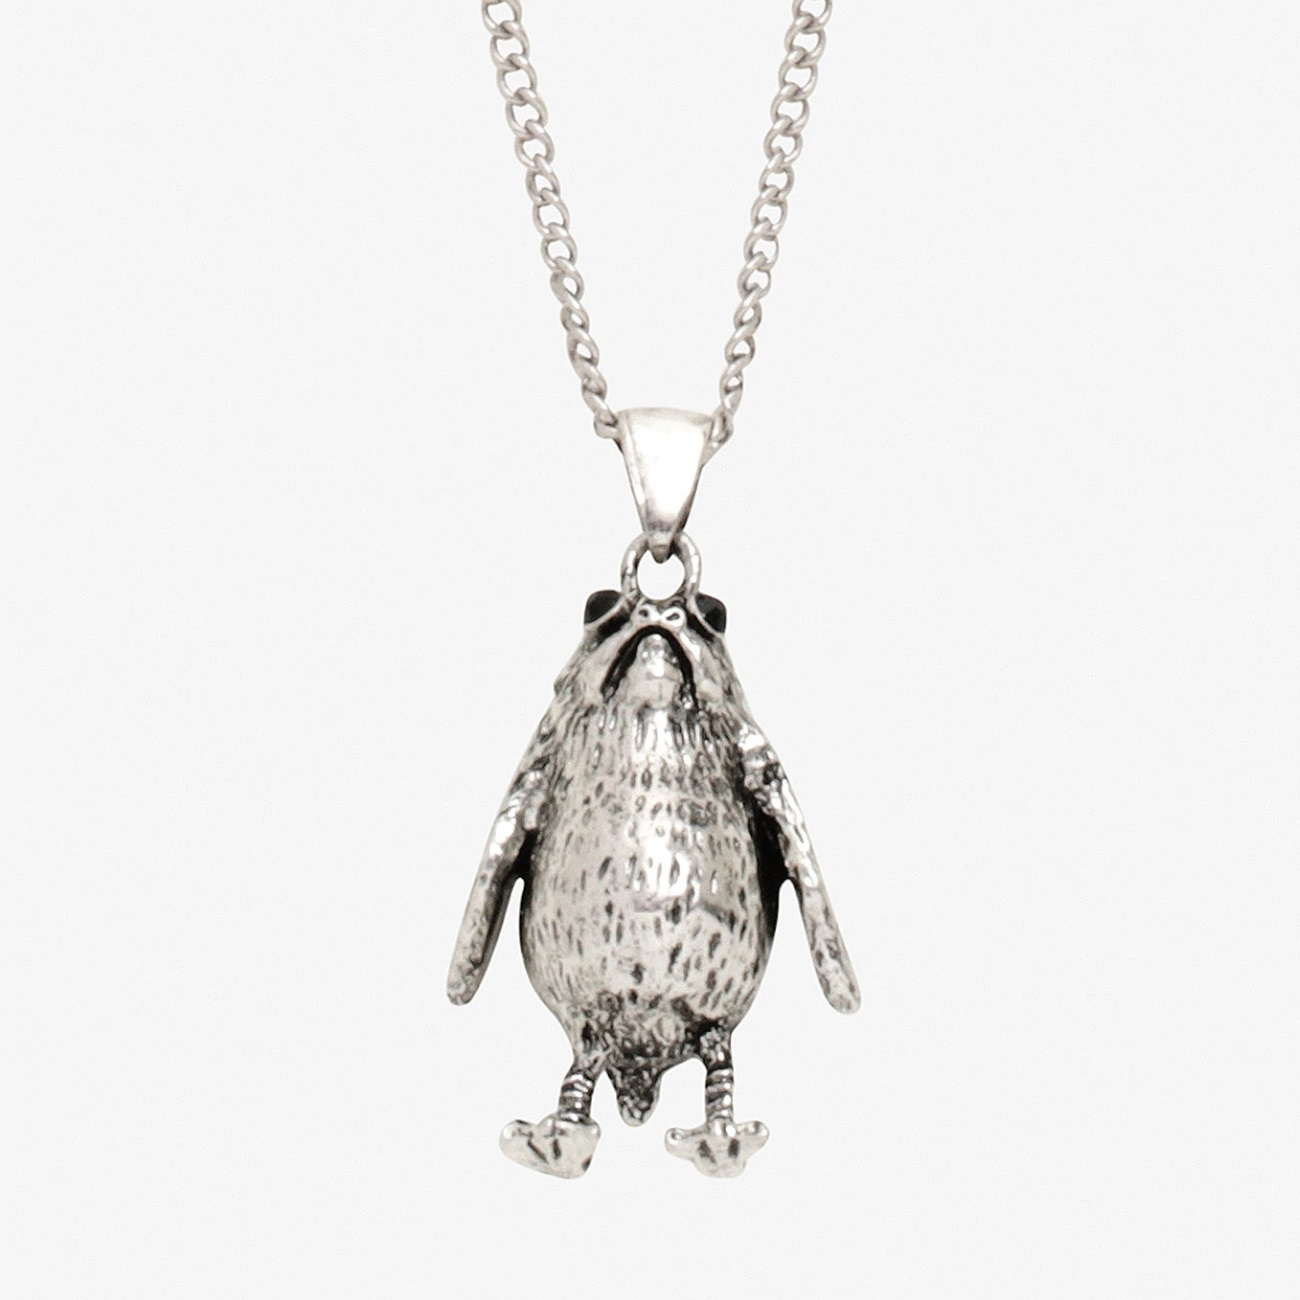 Star Wars Porg Necklace at Hot Topic